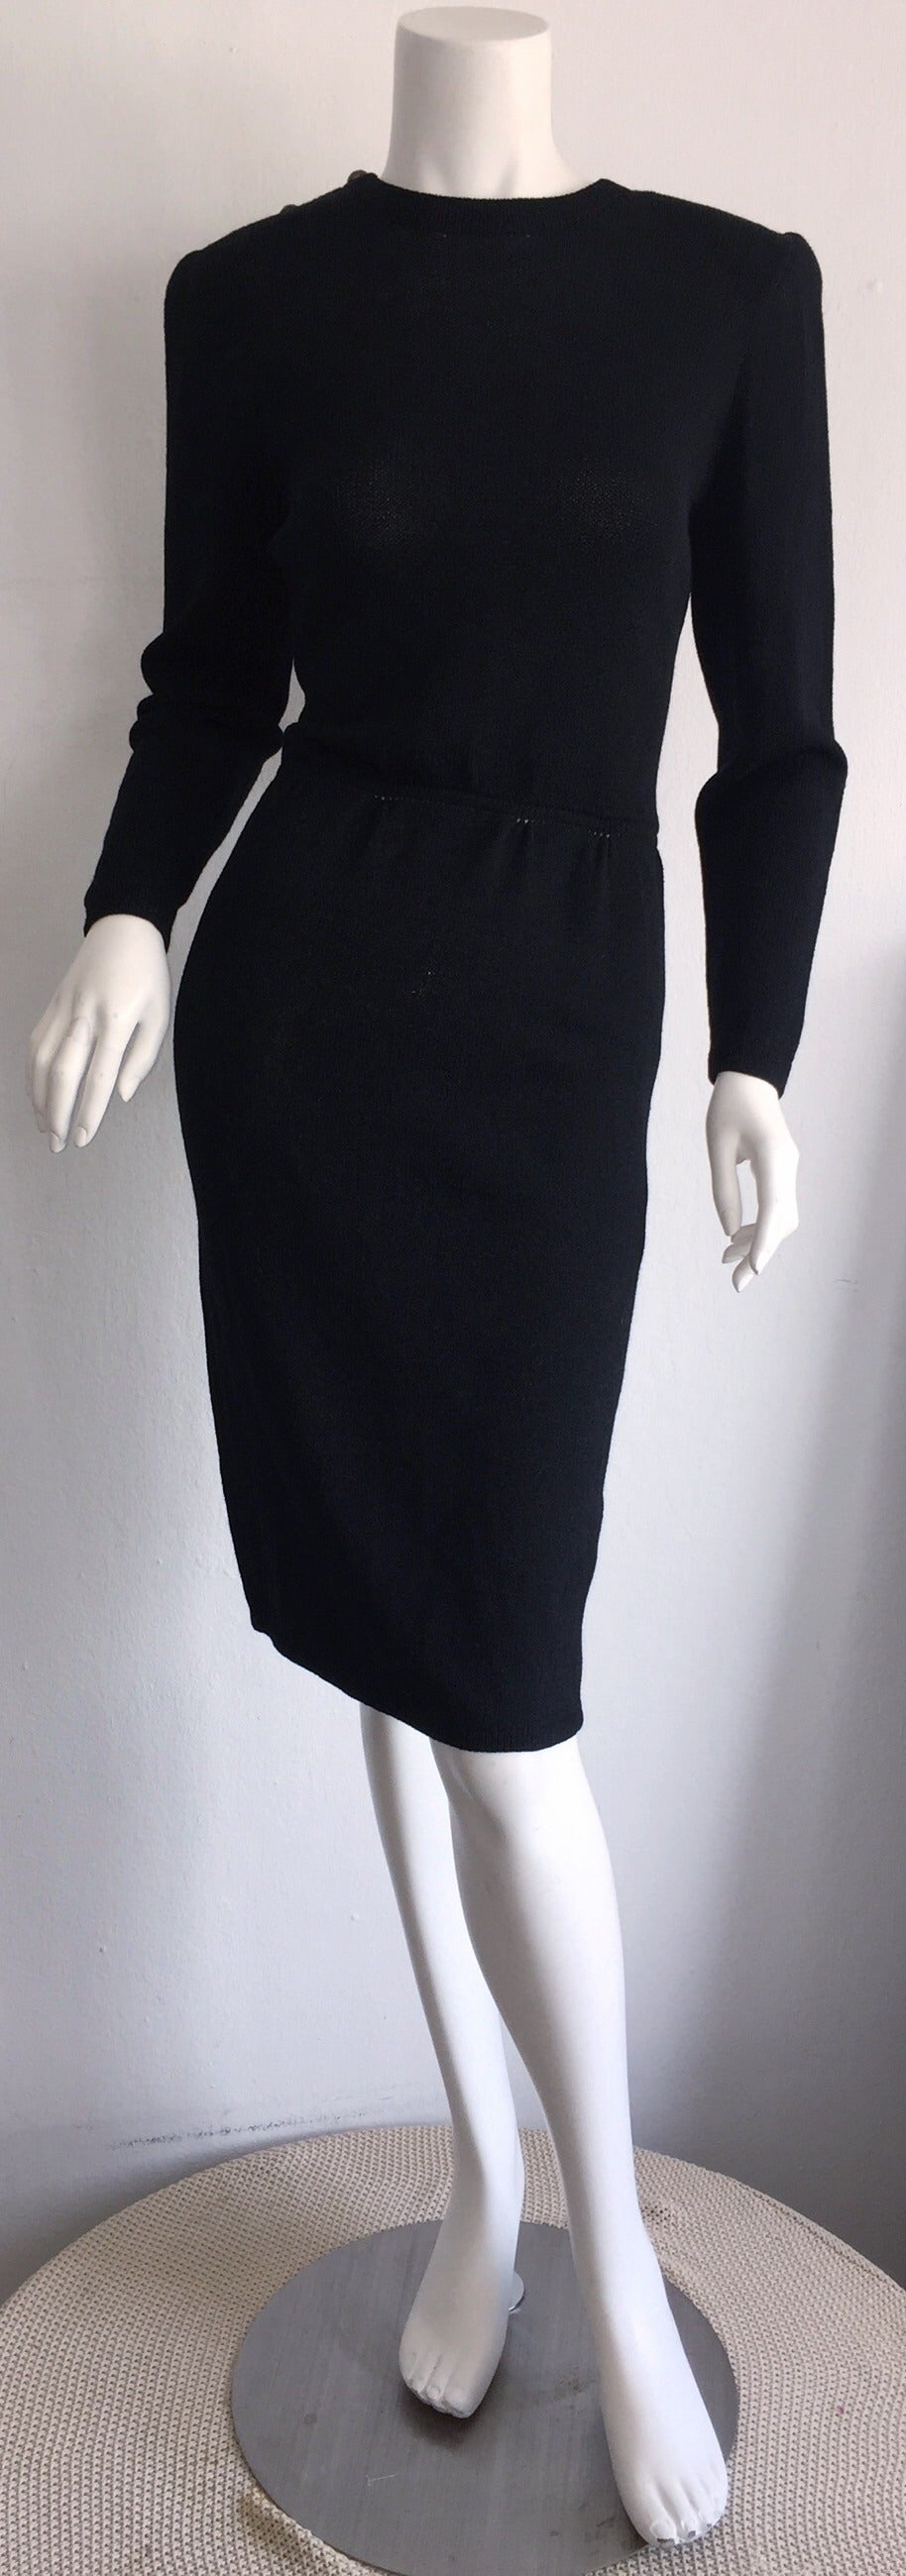 Vintage St. John Neiman Marcus Black Dress w/ Sheer Sparkle Zebra Back 3